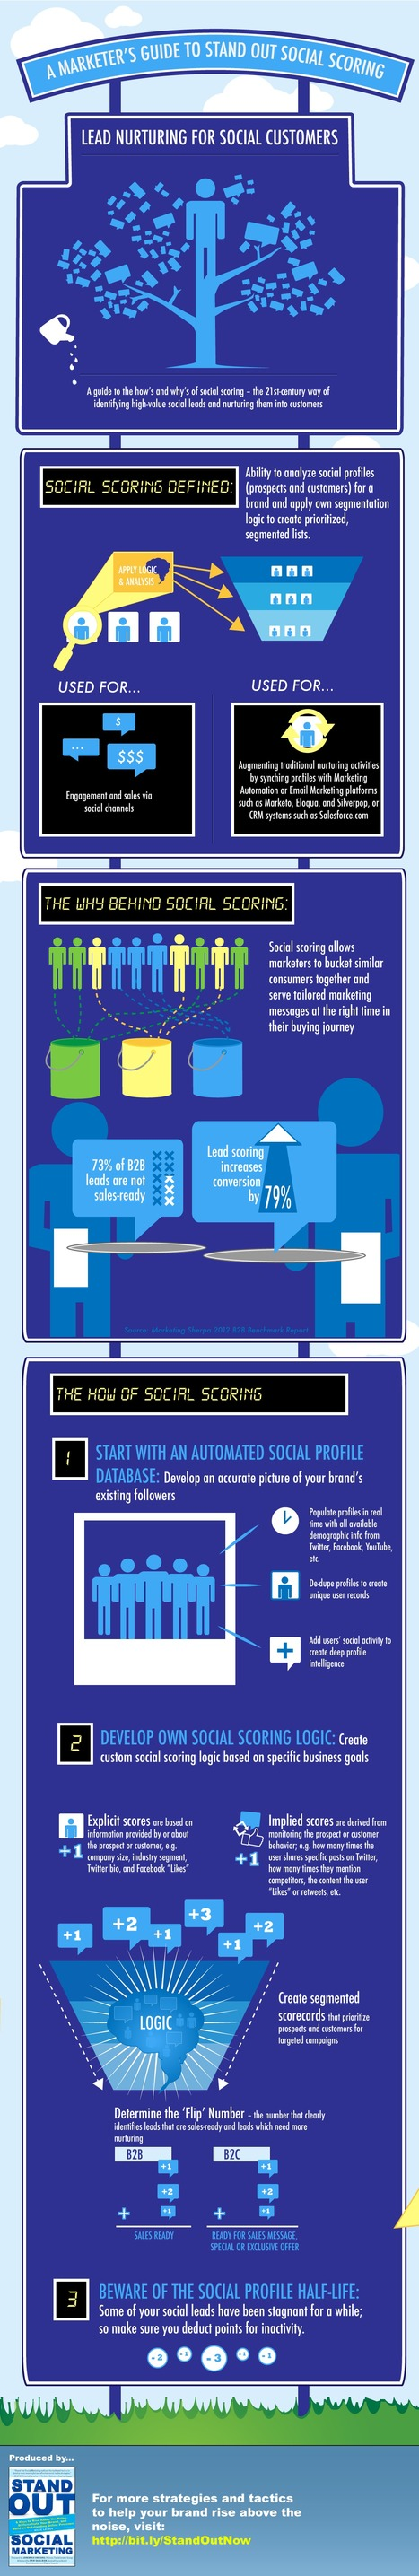 A Marketer's Guide to Social Scoring (Infographic) | Digital-News on Scoop.it today | Scoop.it